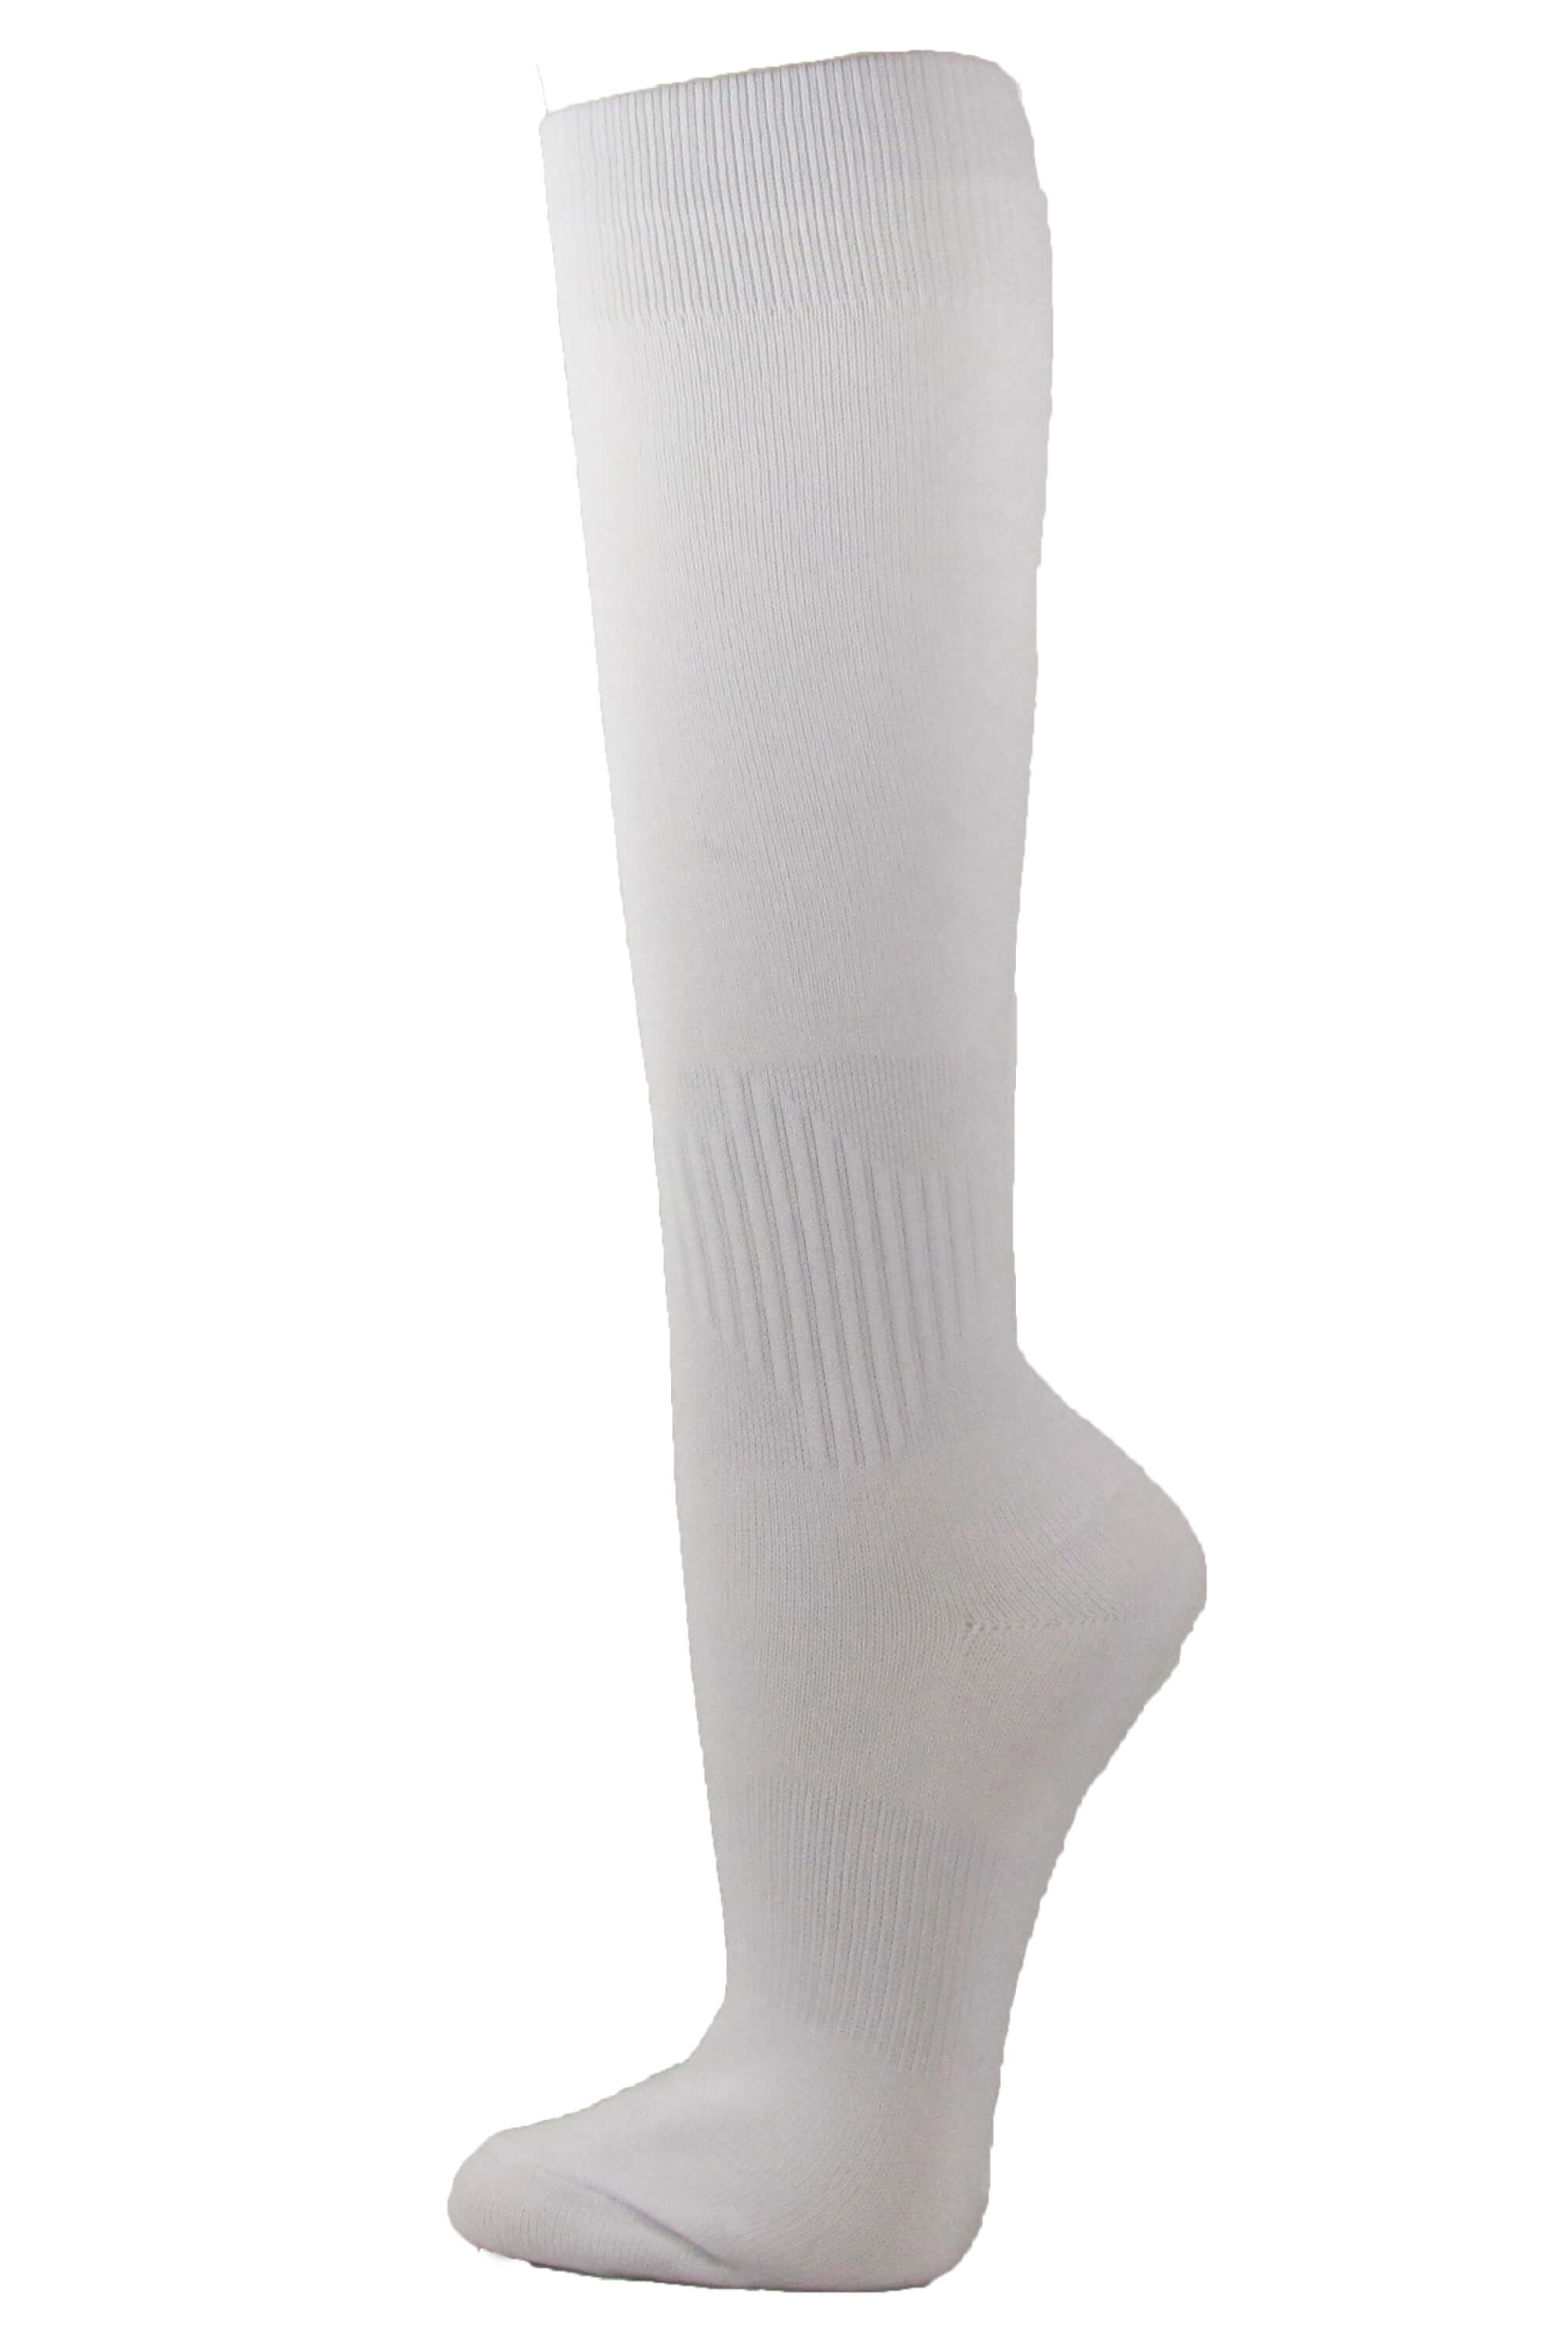 Couver Unisex Polyester Soccer Knee High Sports Athletic Socks, White Medium